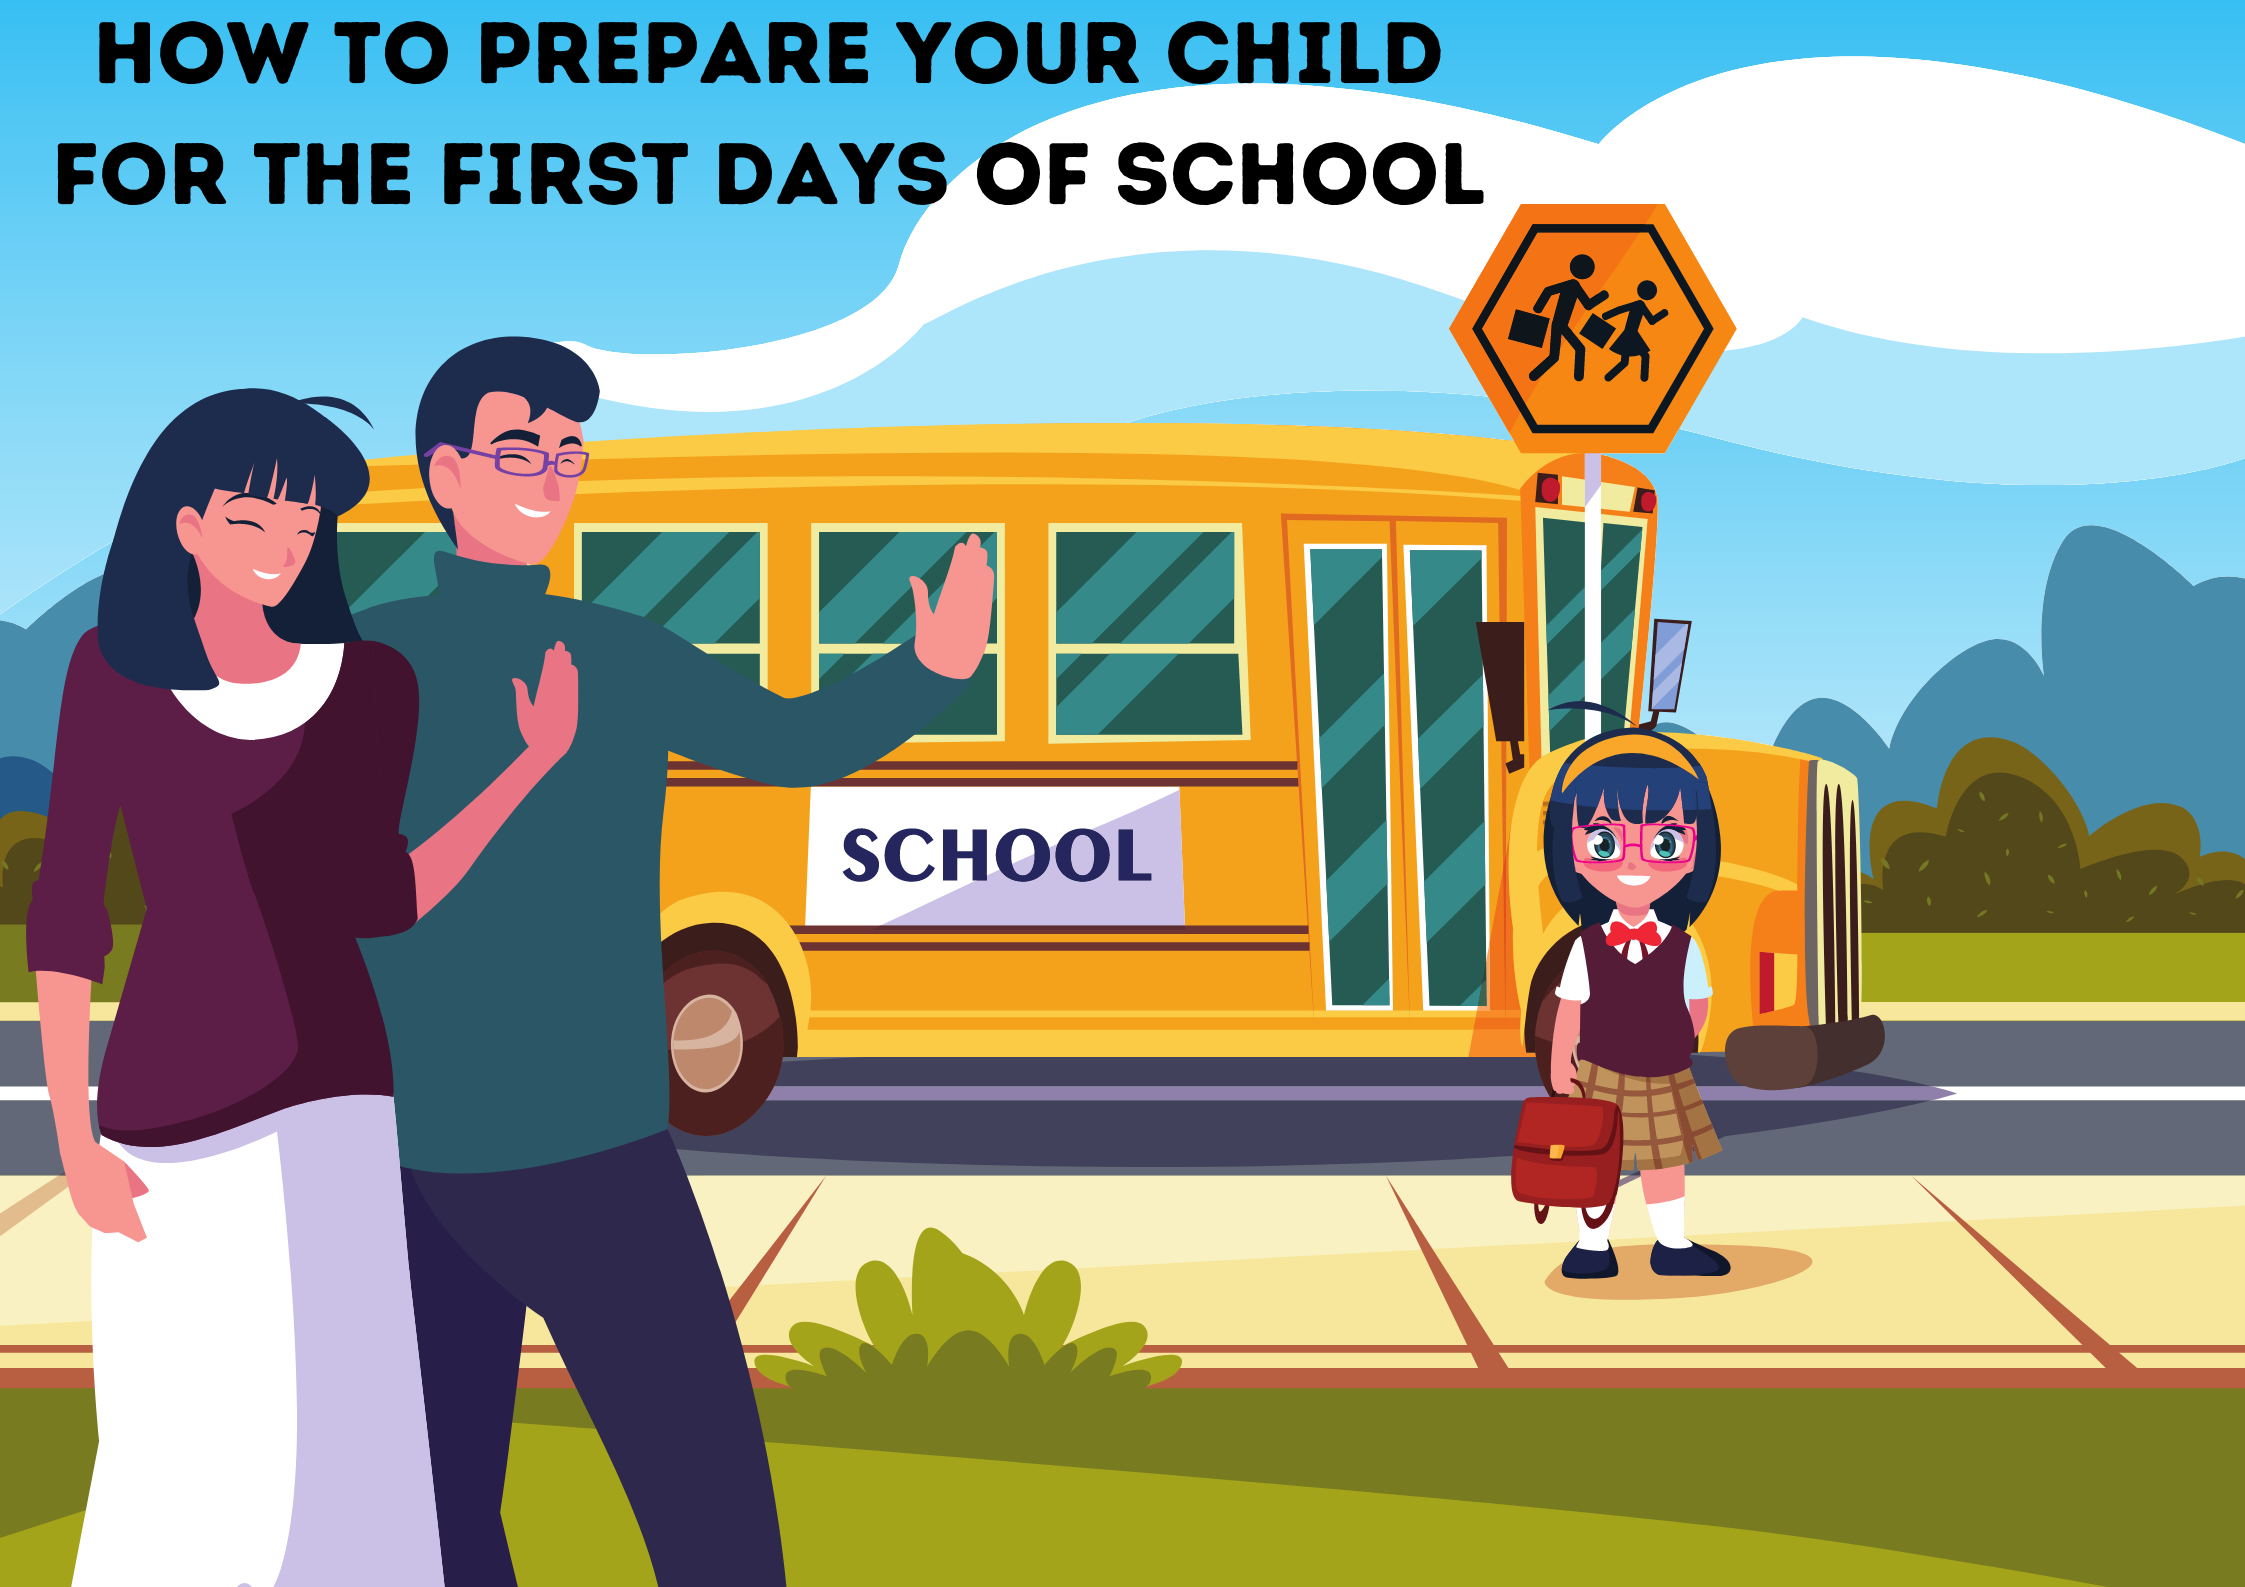 How-To-Prepare-Your-Child-for-the-First-Days-of-School